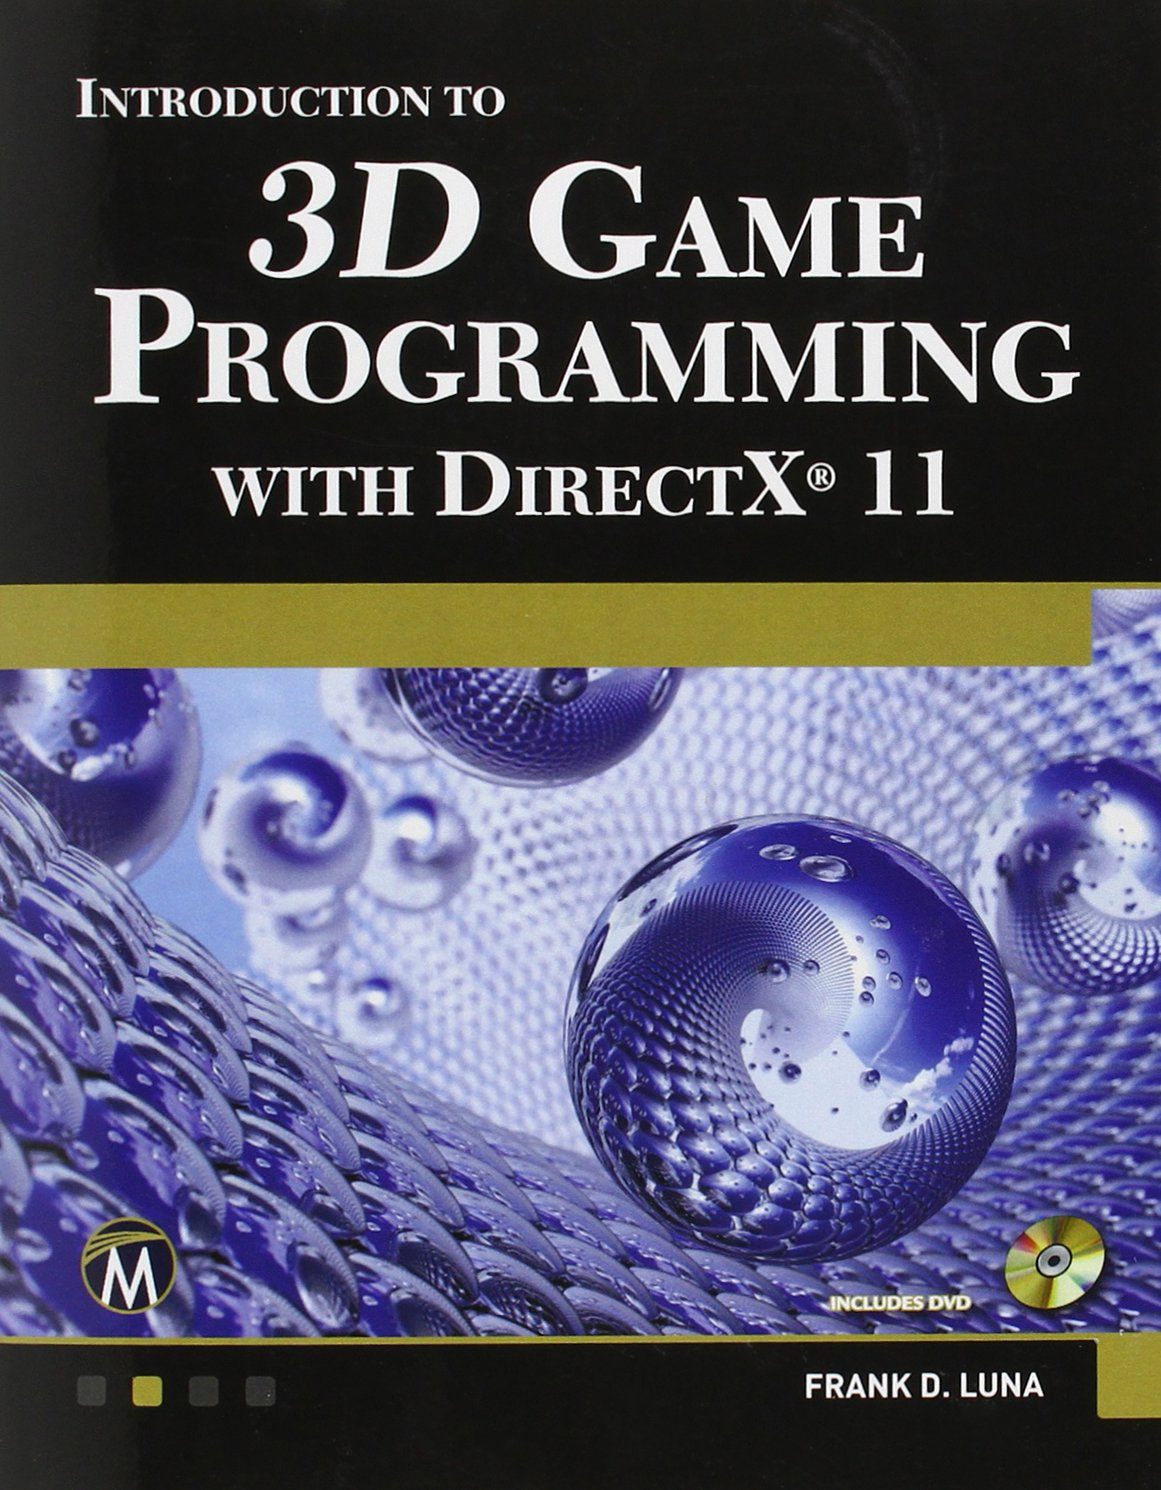 introduction-to-3d-game-programming-with-directx-11